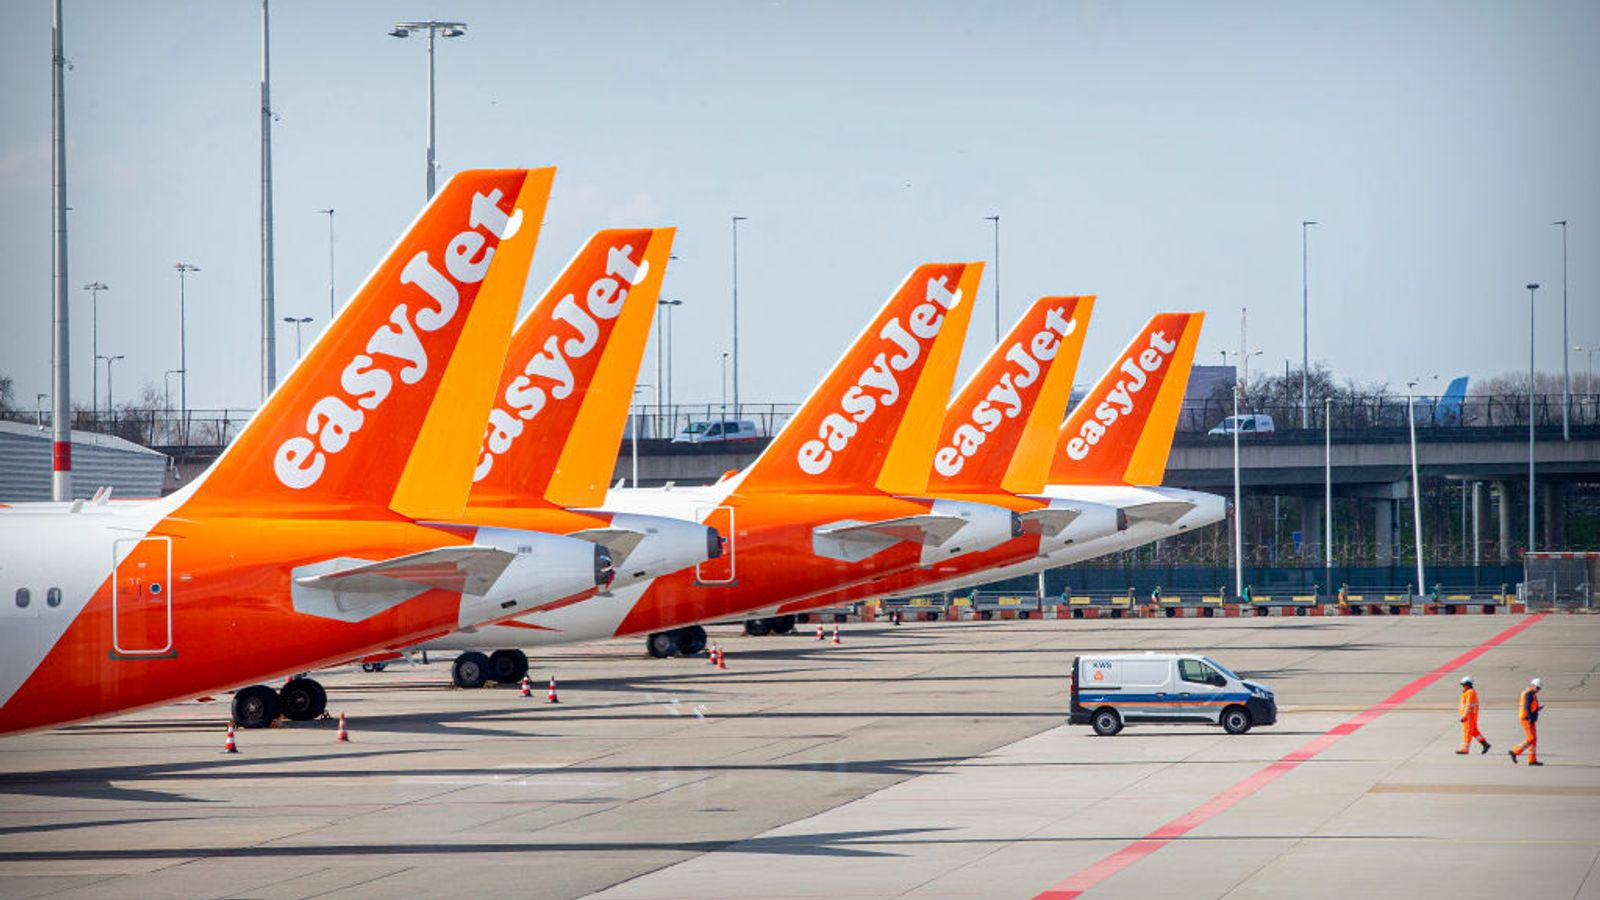 EasyJet row worsens as founder threatens to sue airline's executives